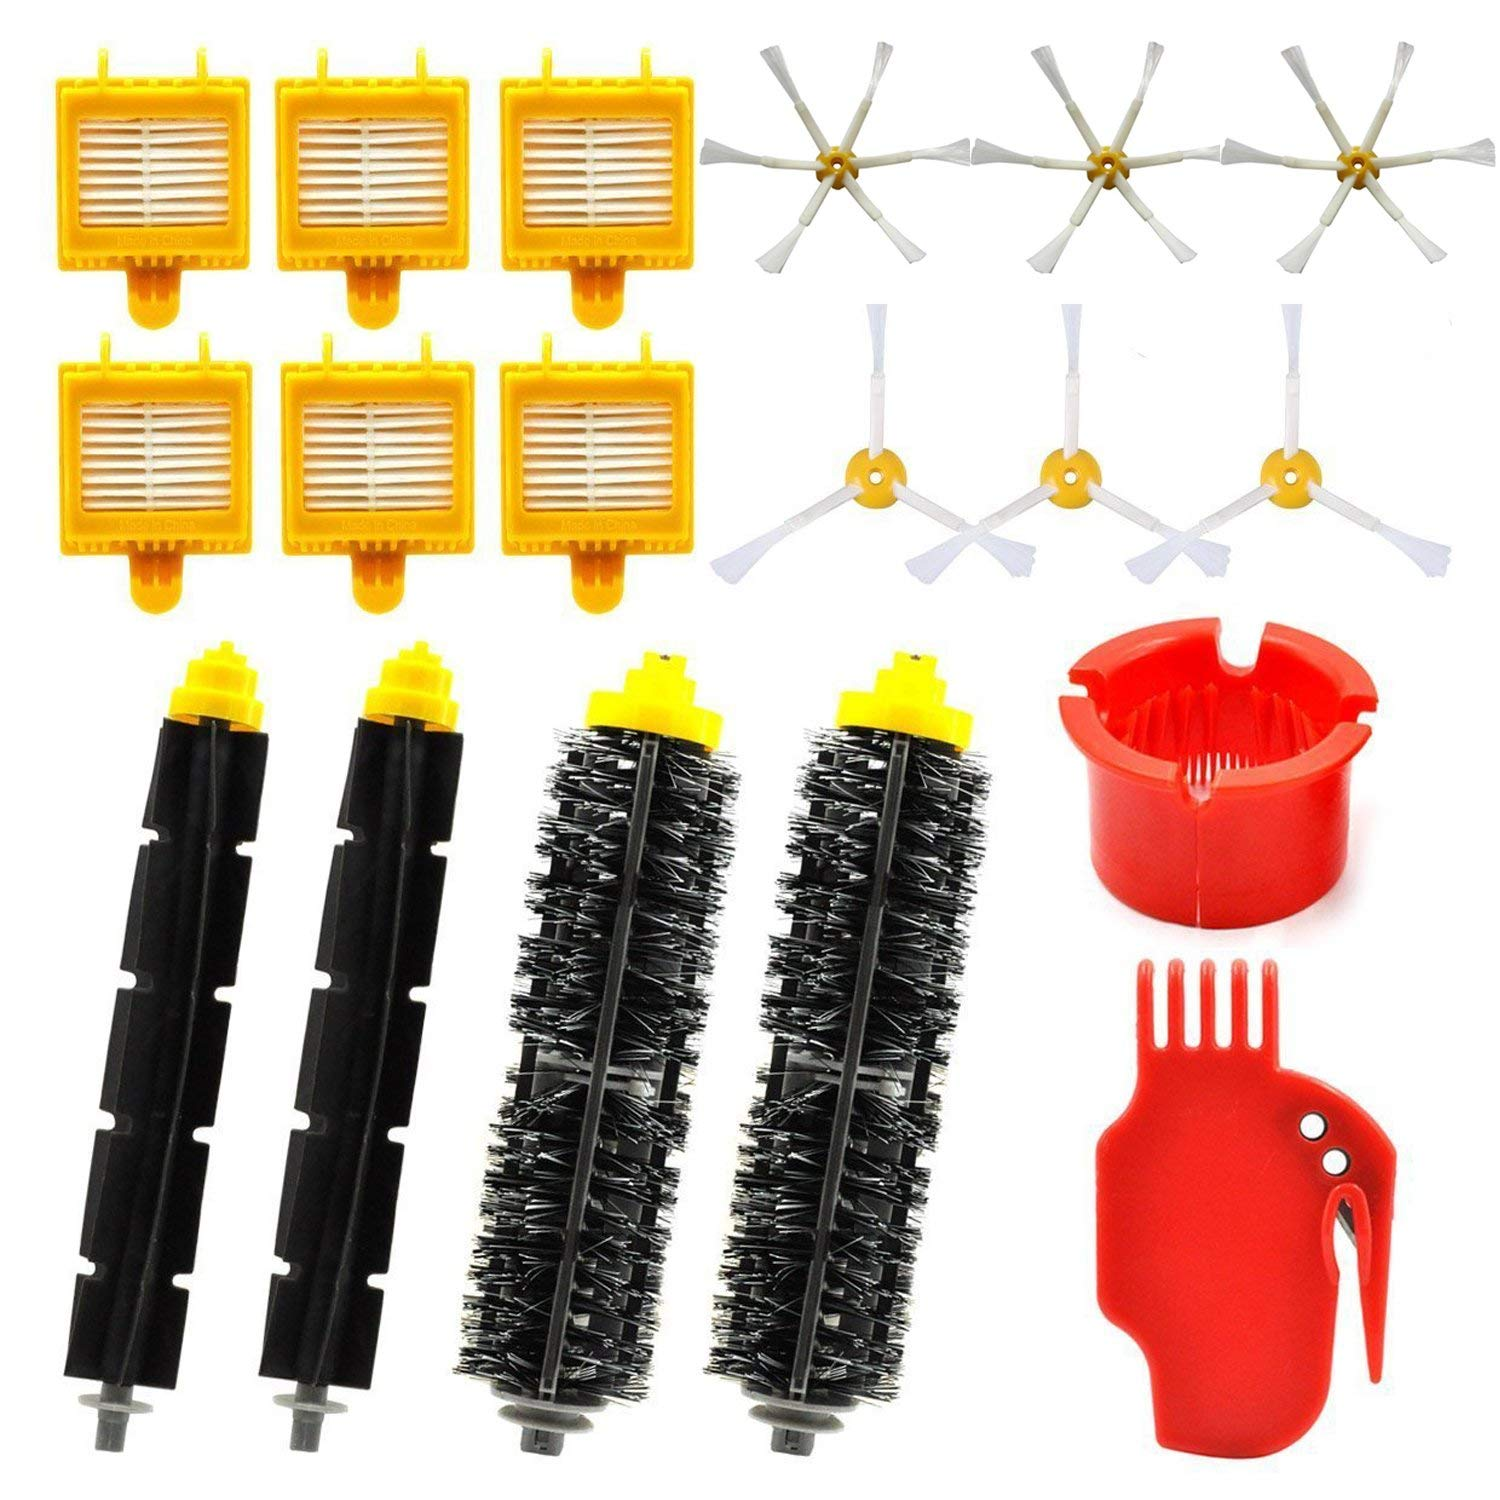 vacuum cleaner parts Replacement Parts Kit for iRobot Roomba 700 Series - Accessories Kit for Roomba 760 770 780 790 (18 in 1) 2 pcs hepa filter replacement kit for irobot roomba 700 series 750 760 770 780 790 robot vacuum cleaner parts accessories filter